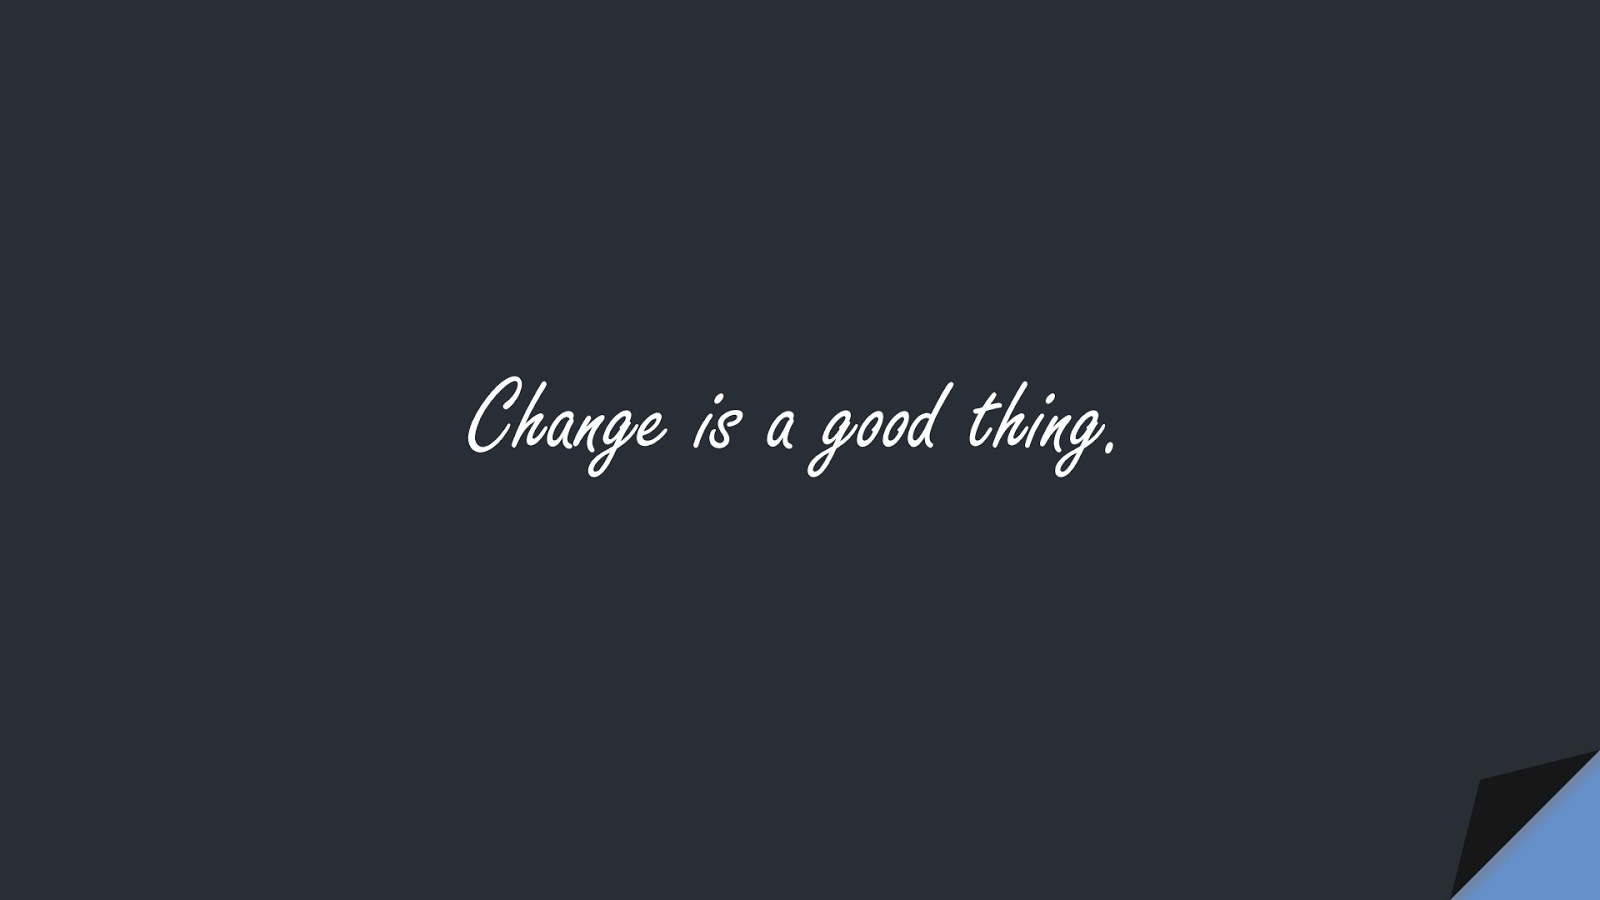 Change is a good thing.FALSE